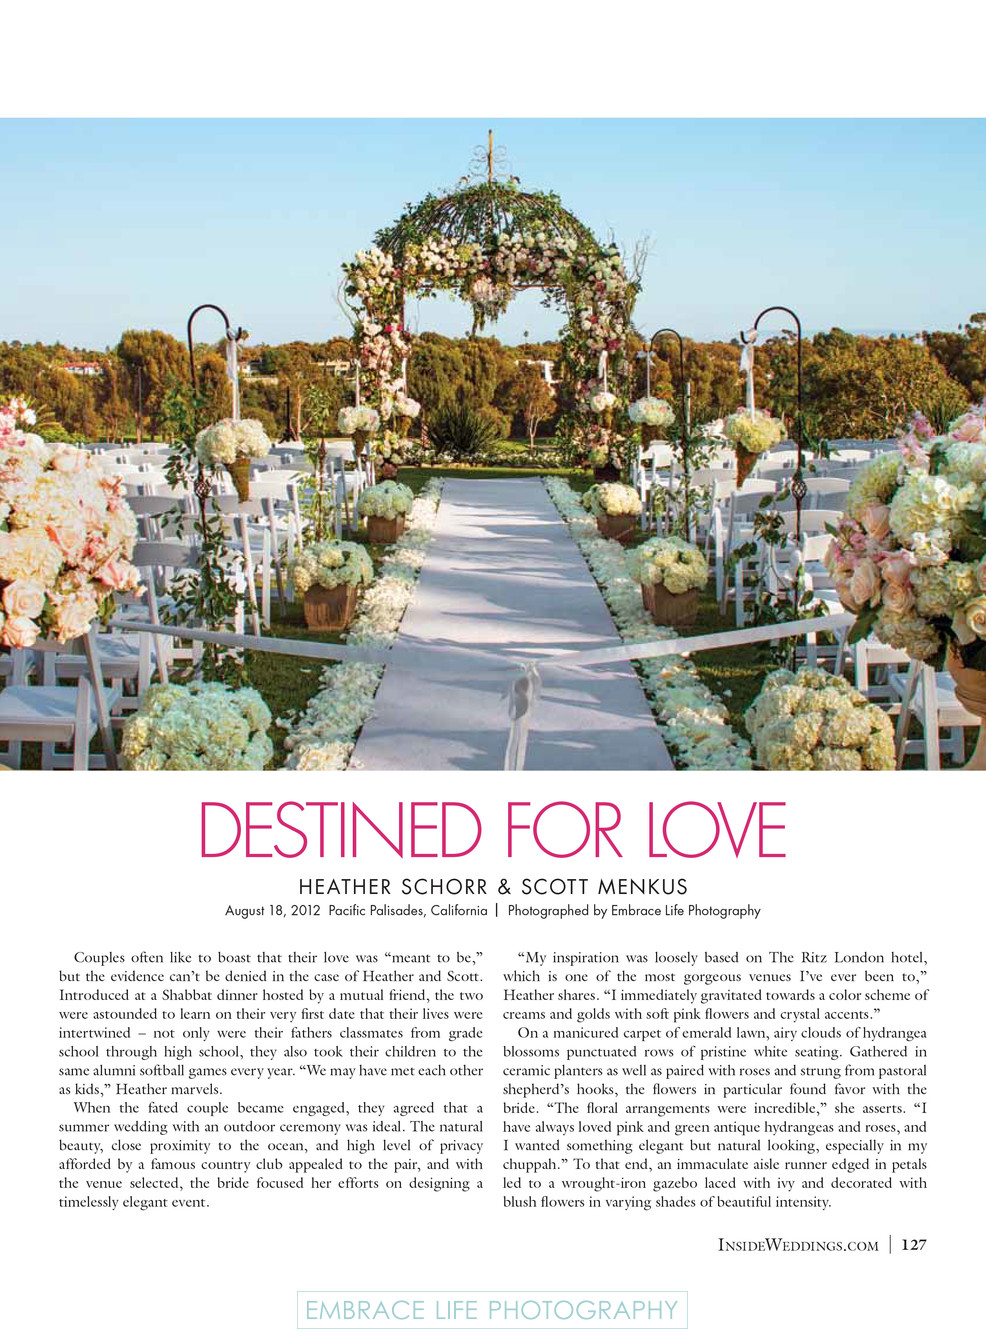 Floral Lined Aisle and Chuppah - Inside Weddings